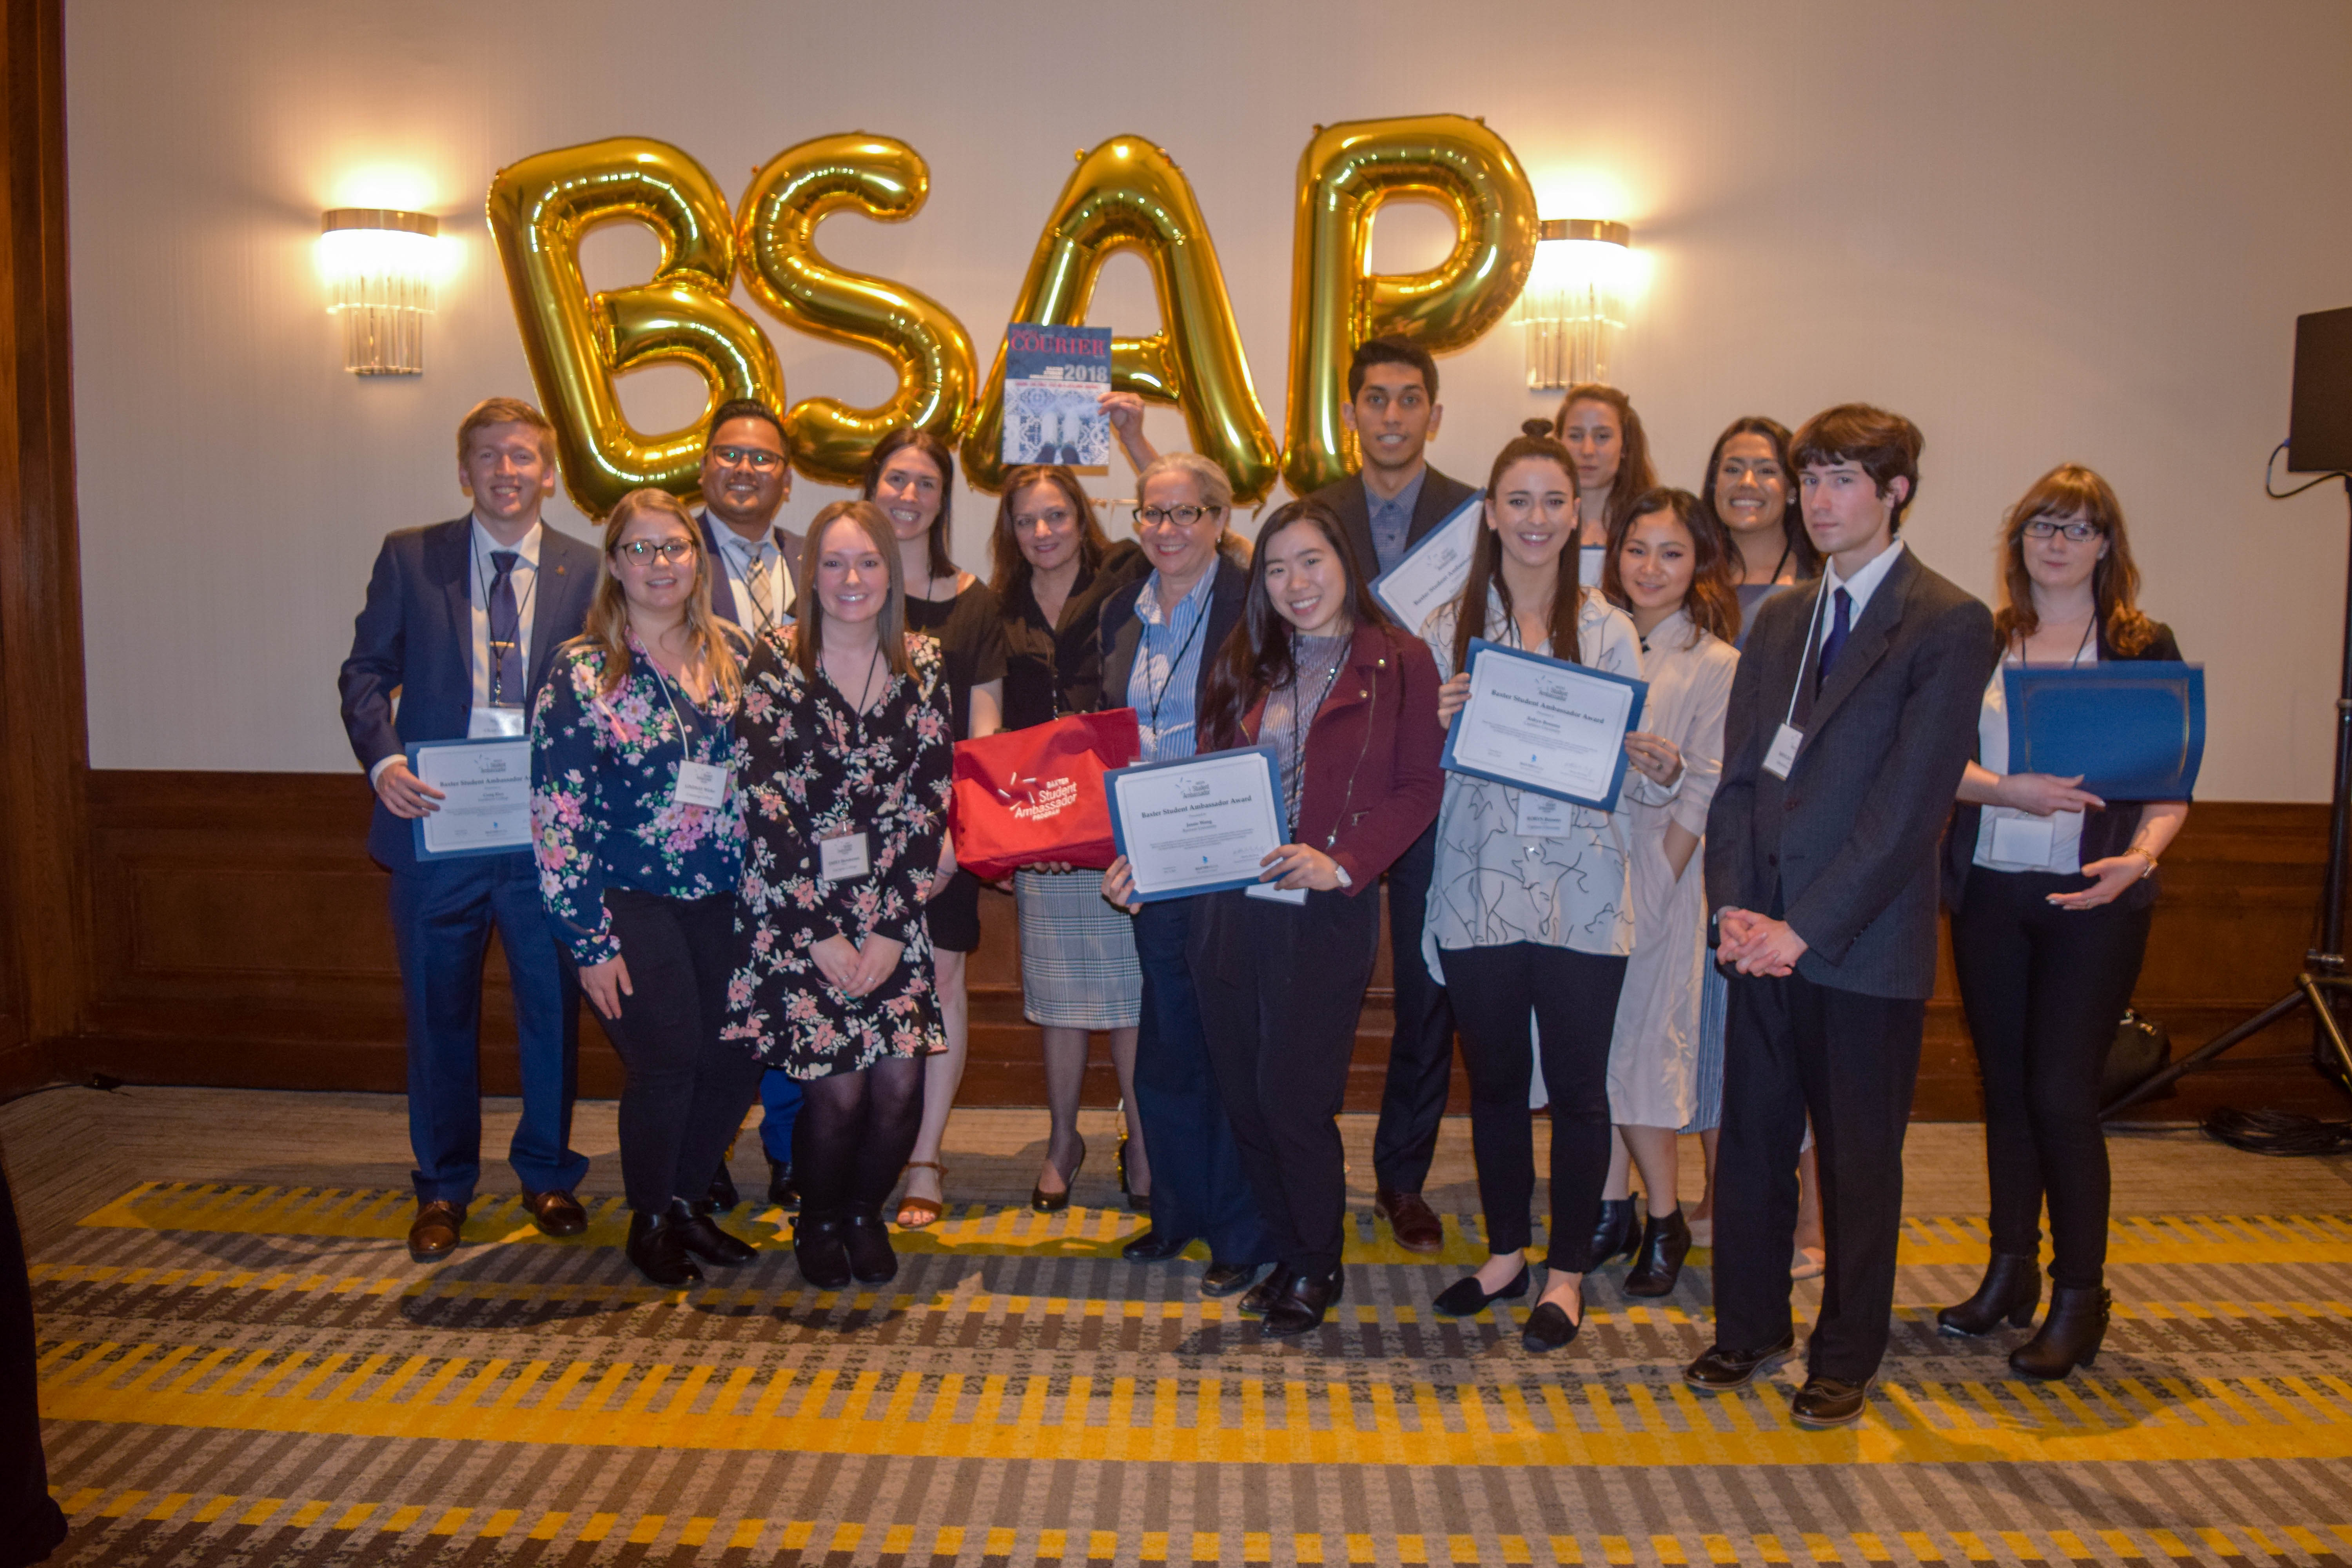 The 2018 BSAP Awards Luncheon was a resounding success by all accounts.